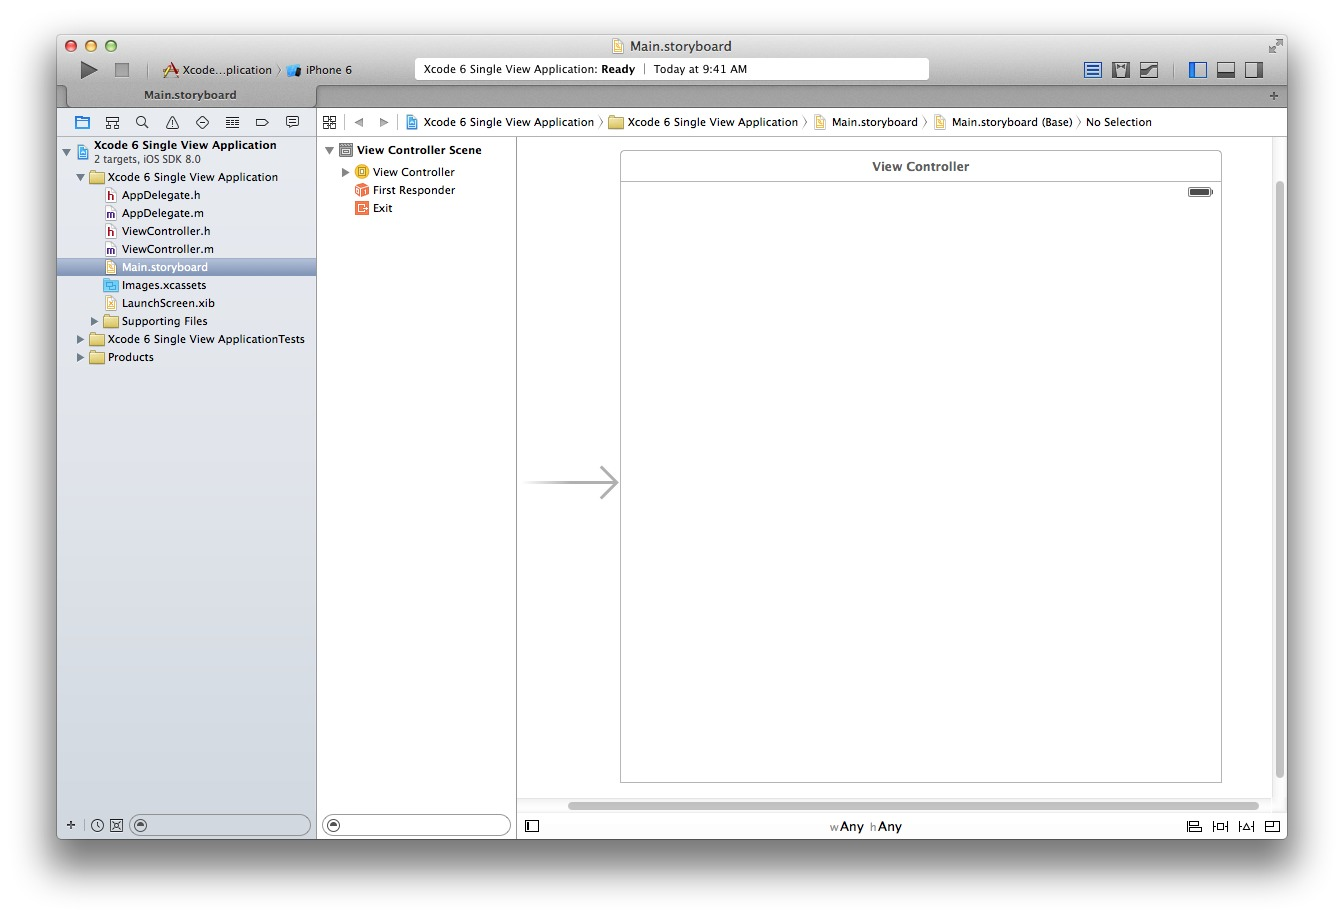 Xcode 6 Single View Application